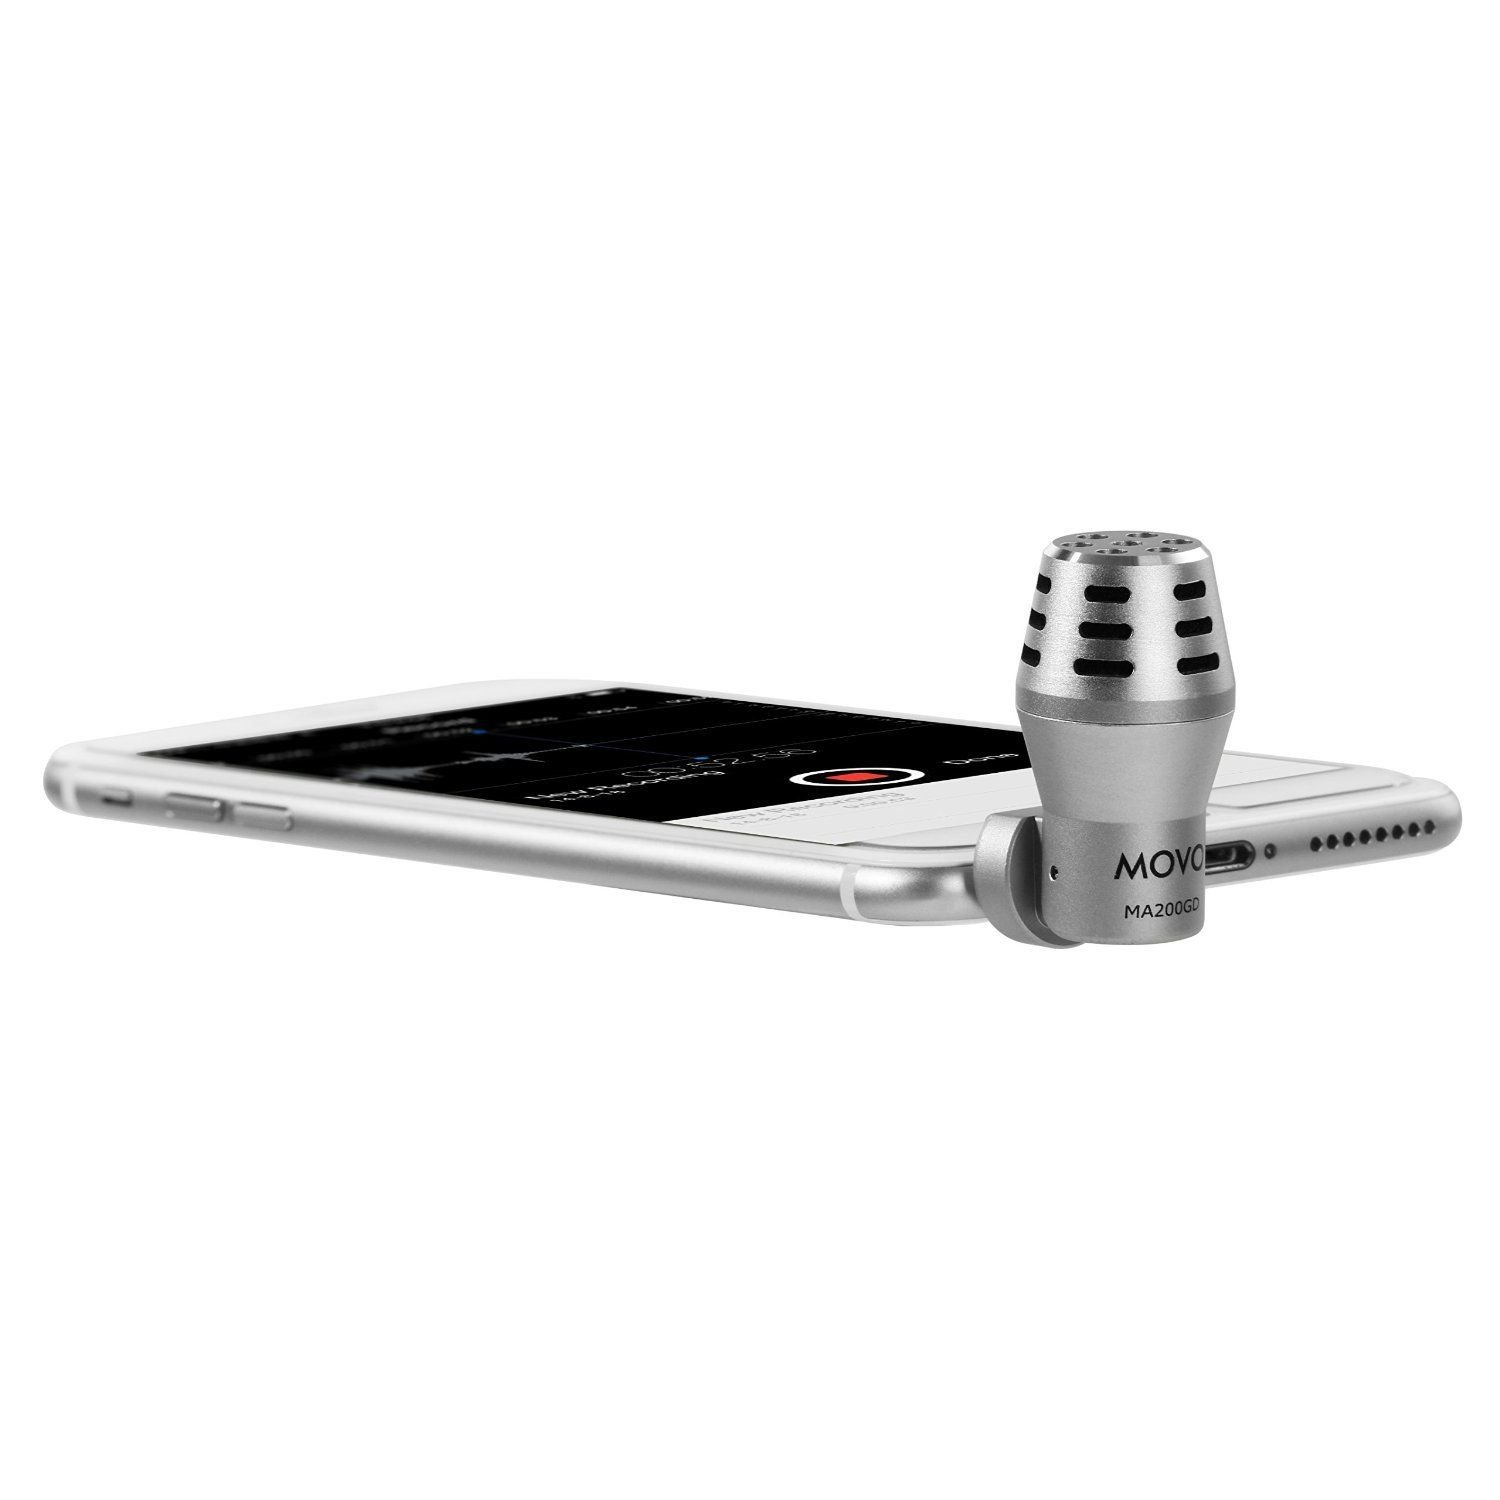 Movo MA200 Omni-Directional Calibrated TRRS Condenser Microphone for Apple iPhone, iPod Touch, iPad (Silver) by Movo